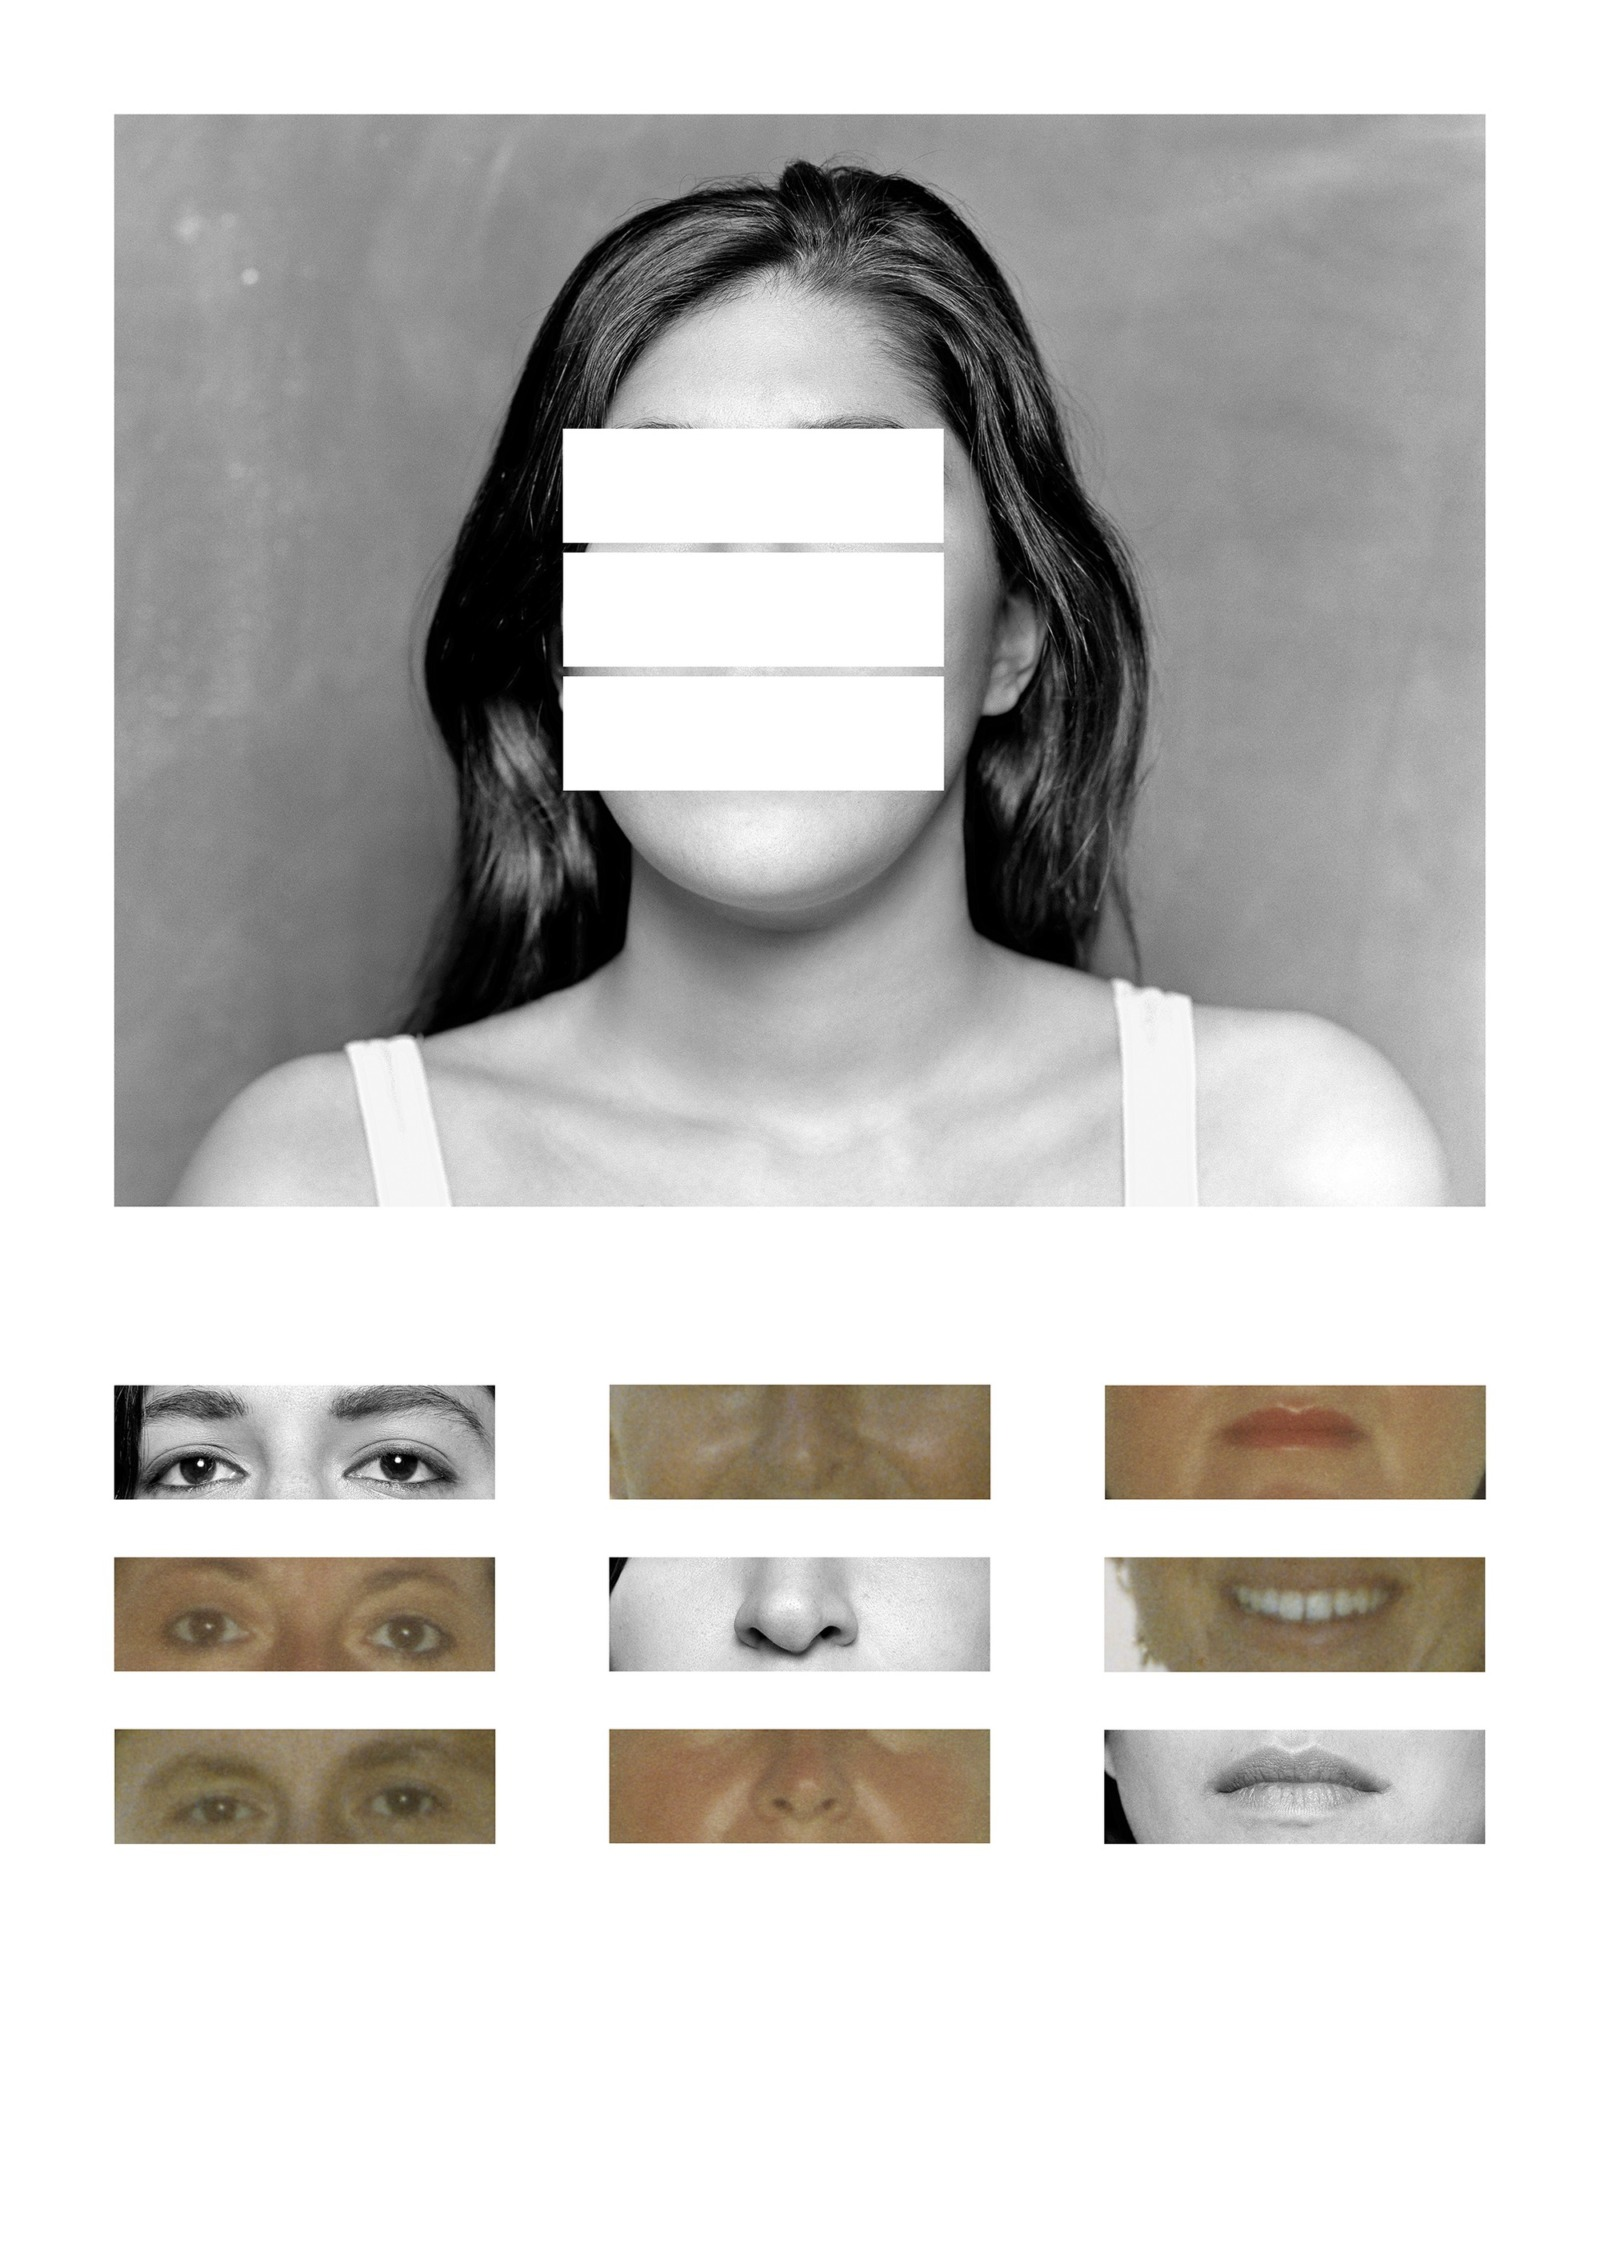 An edited photo of a woman's face, her eyes, nose, and mouth are compared to those of other anonymous people.